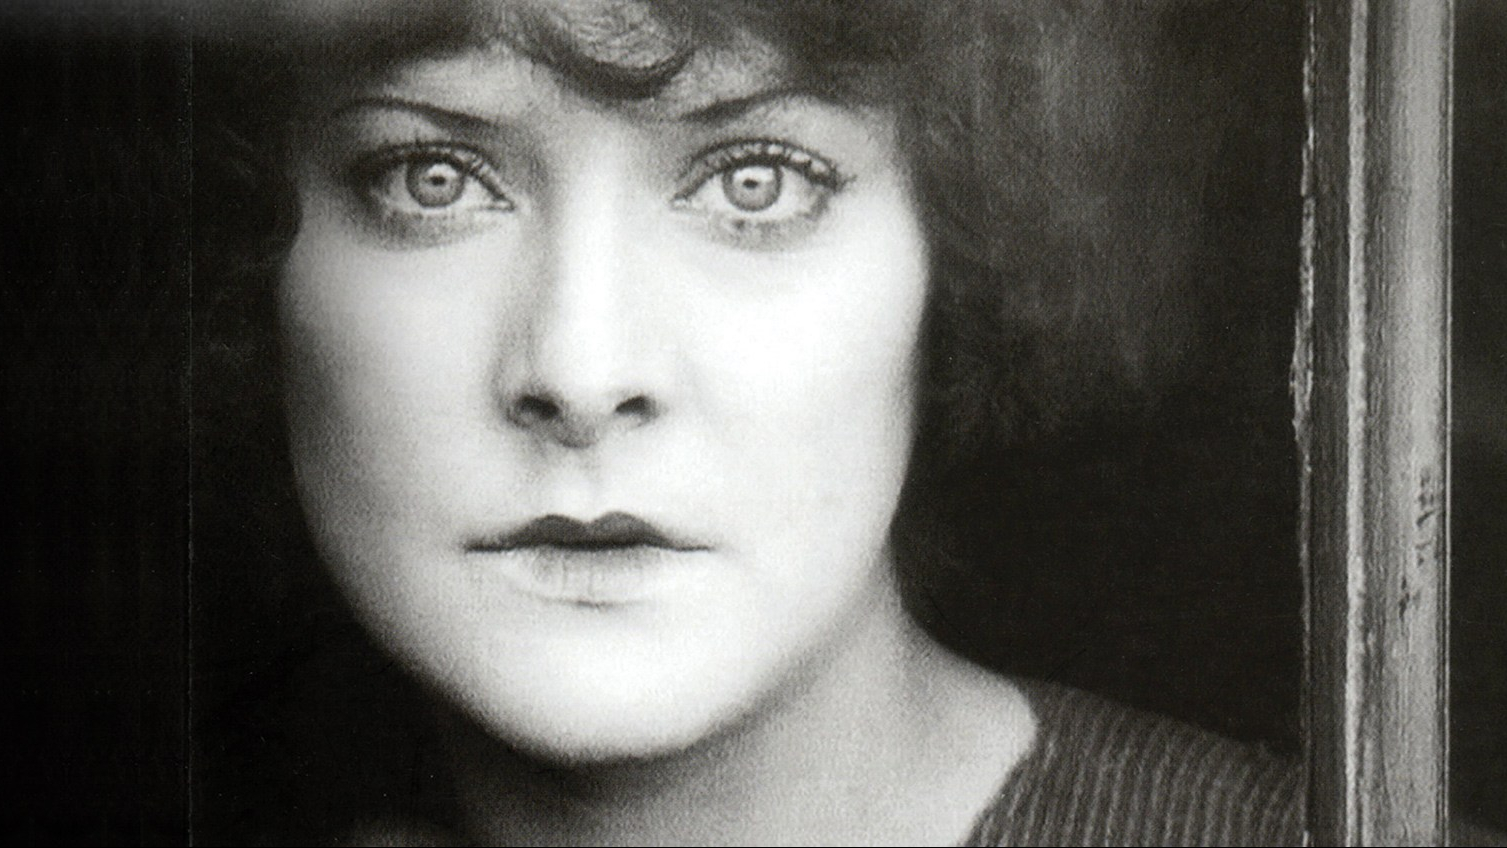 The Faithful Heart / Cœur fidèle (Jean Epstein, 1923), Pathé, France, 35mm, 87 minutes, Marie (Gina Manès)